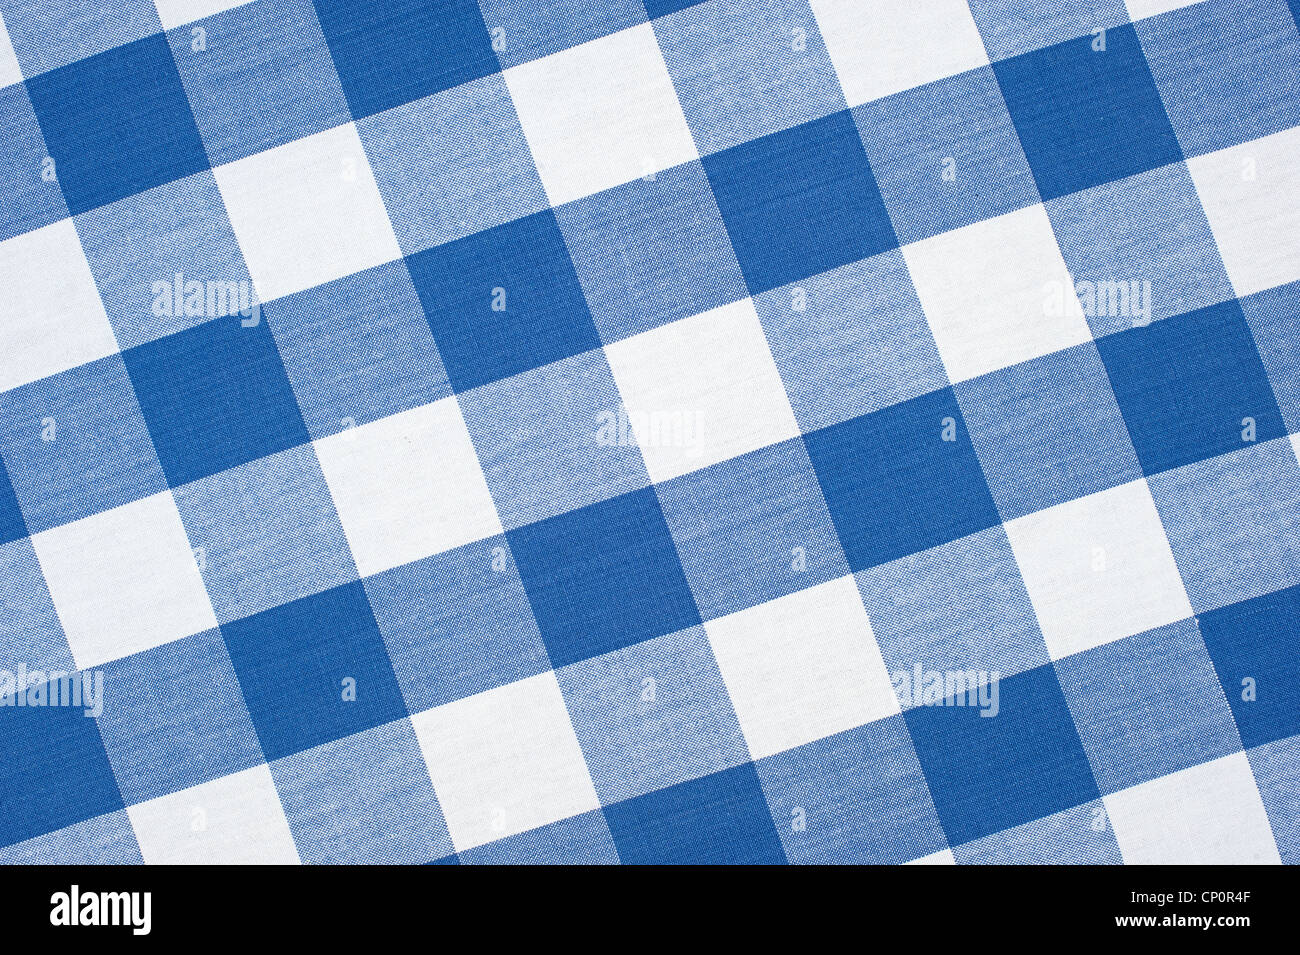 A blue, seamless, checkered picnic tablecloth fully framed with a diagonal perspective. - Stock Image